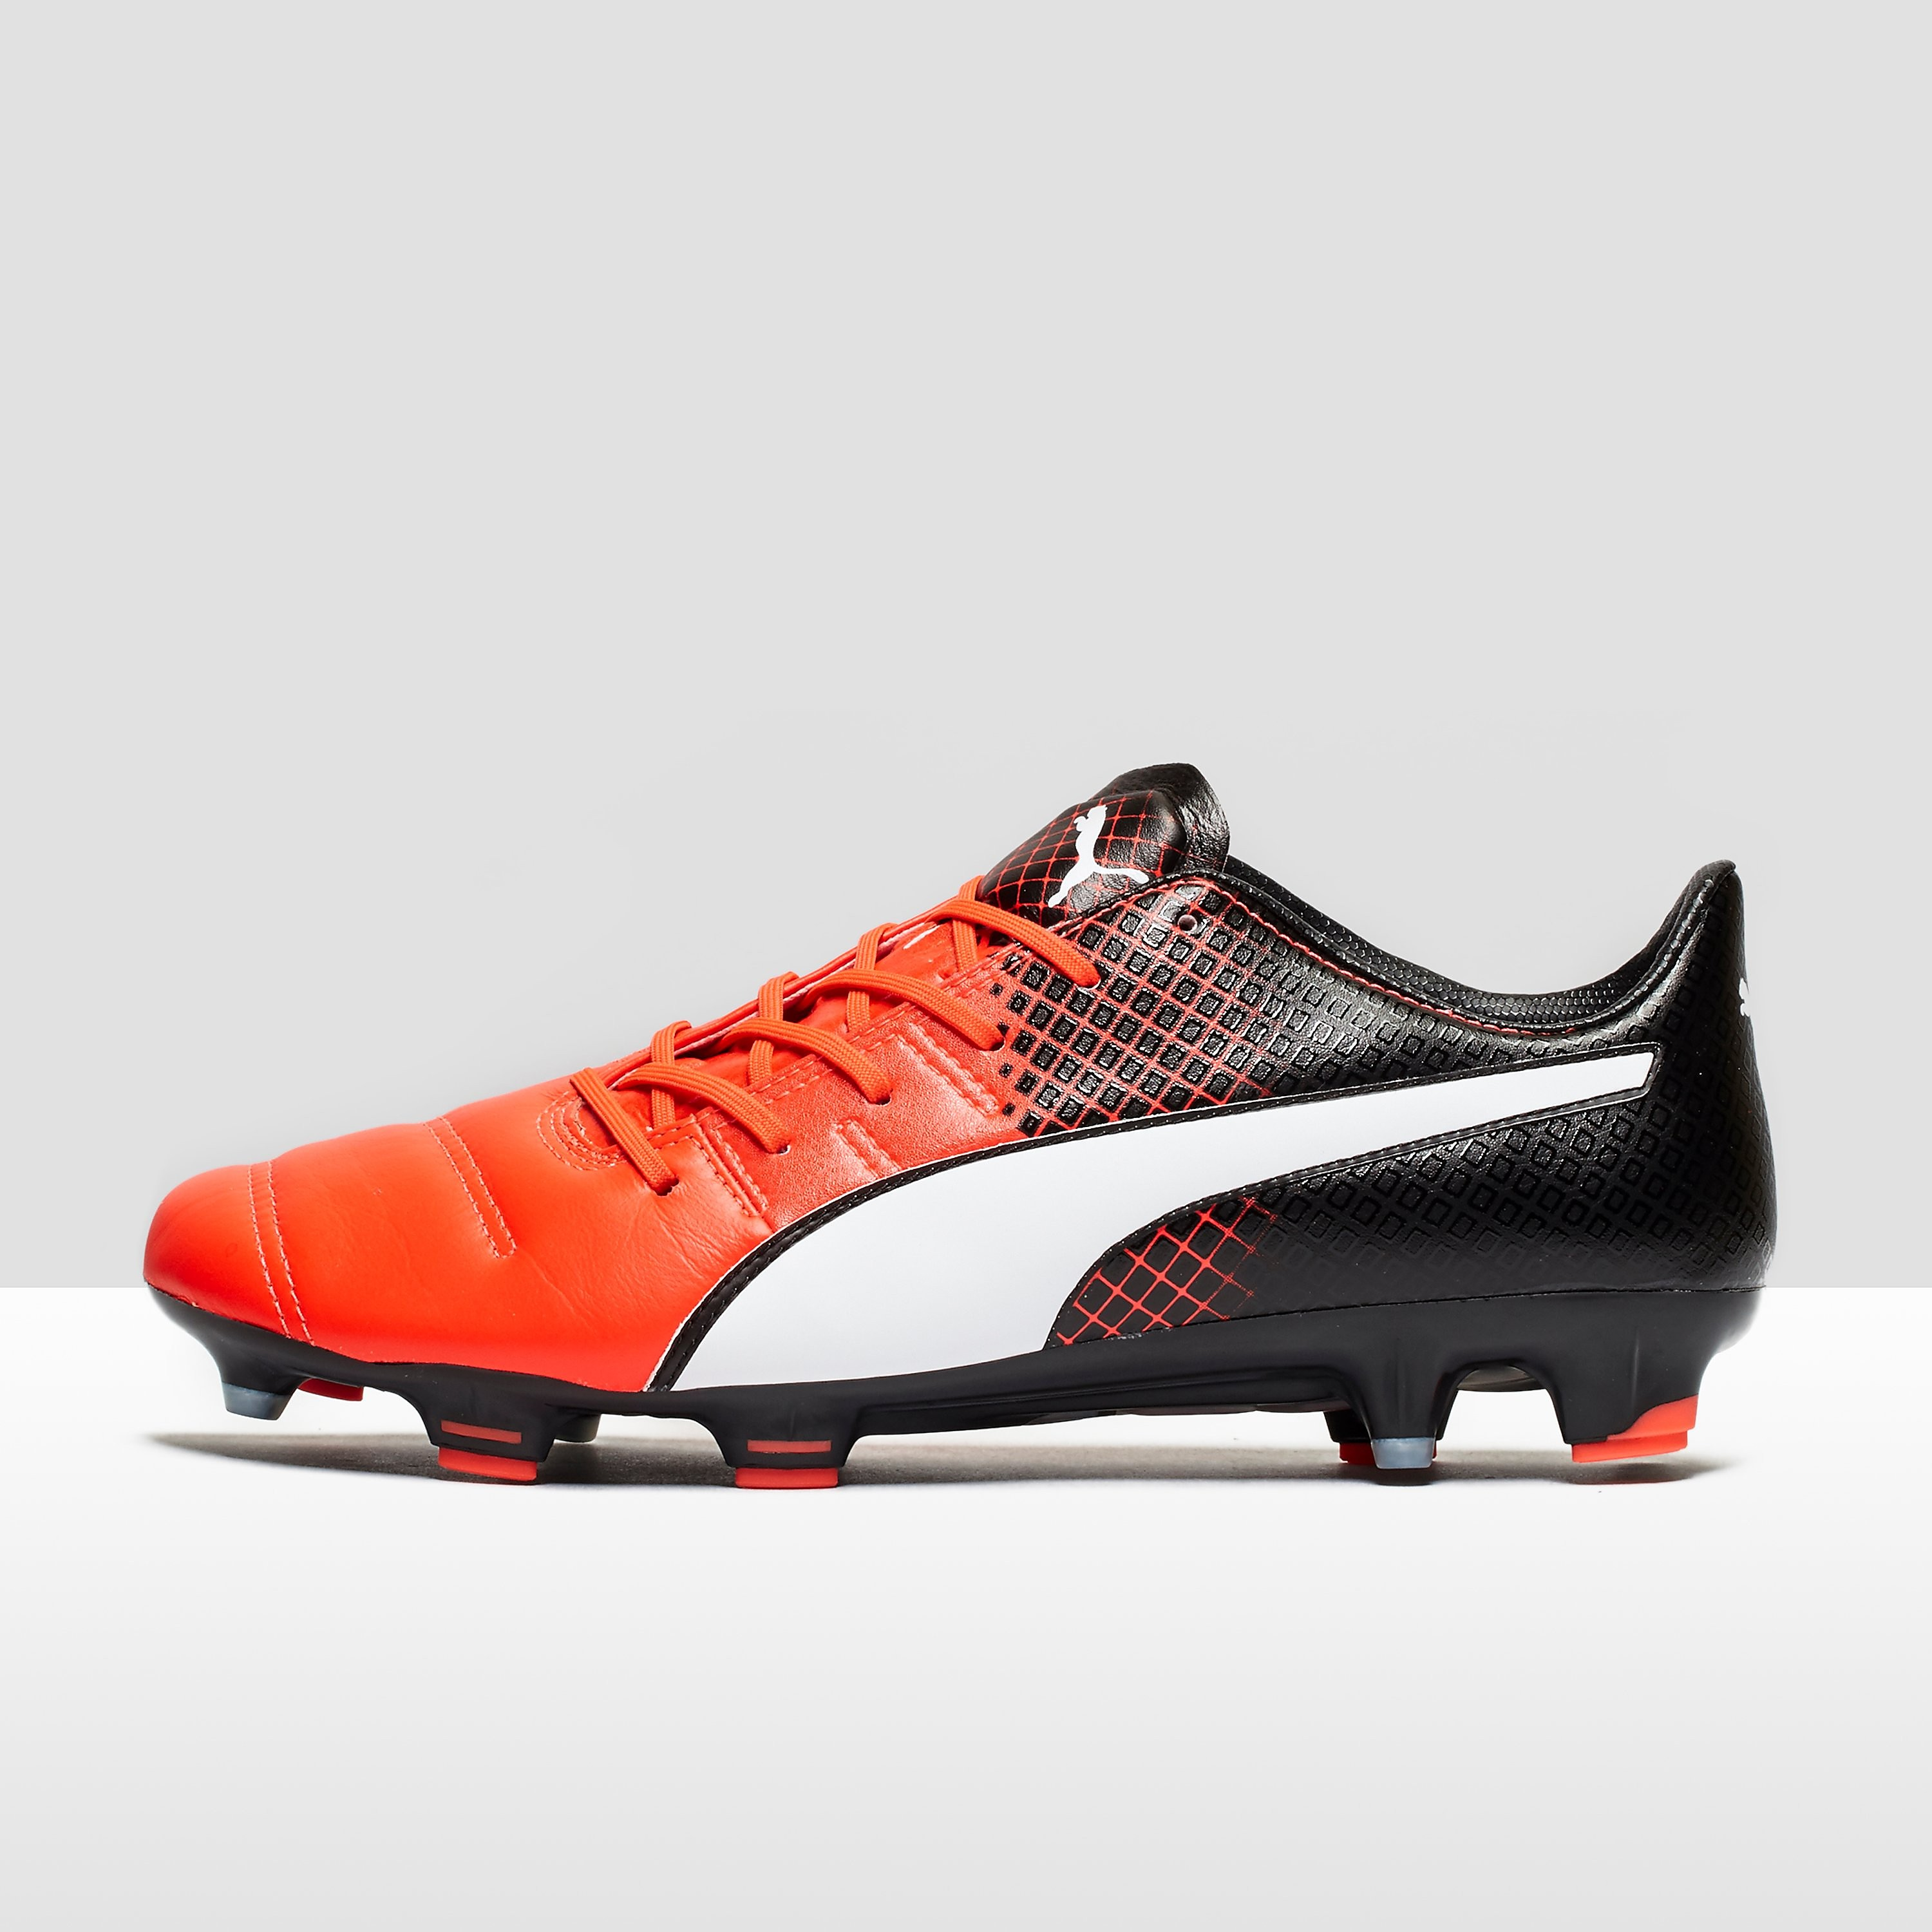 PUMA EVOPOWER 1.3 LEATHER FIRM GROUND FOOTBALL BOOTS